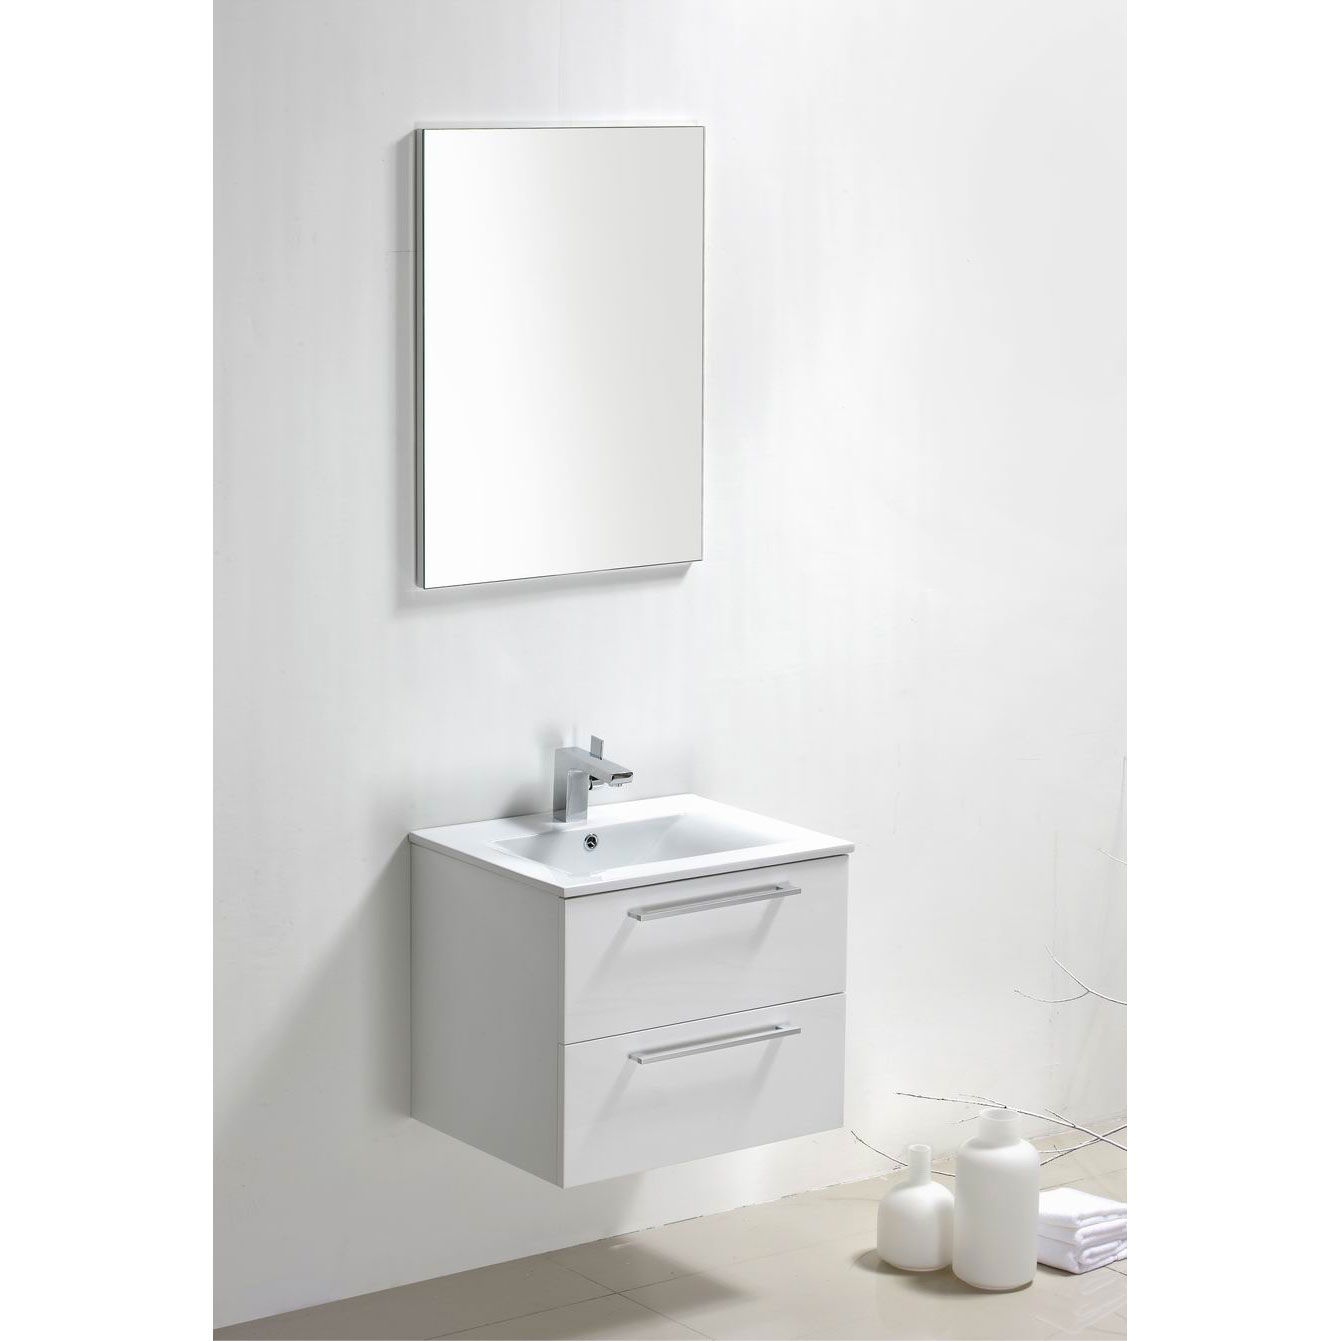 Modern floating bathroom vanities Floating bathroom vanity